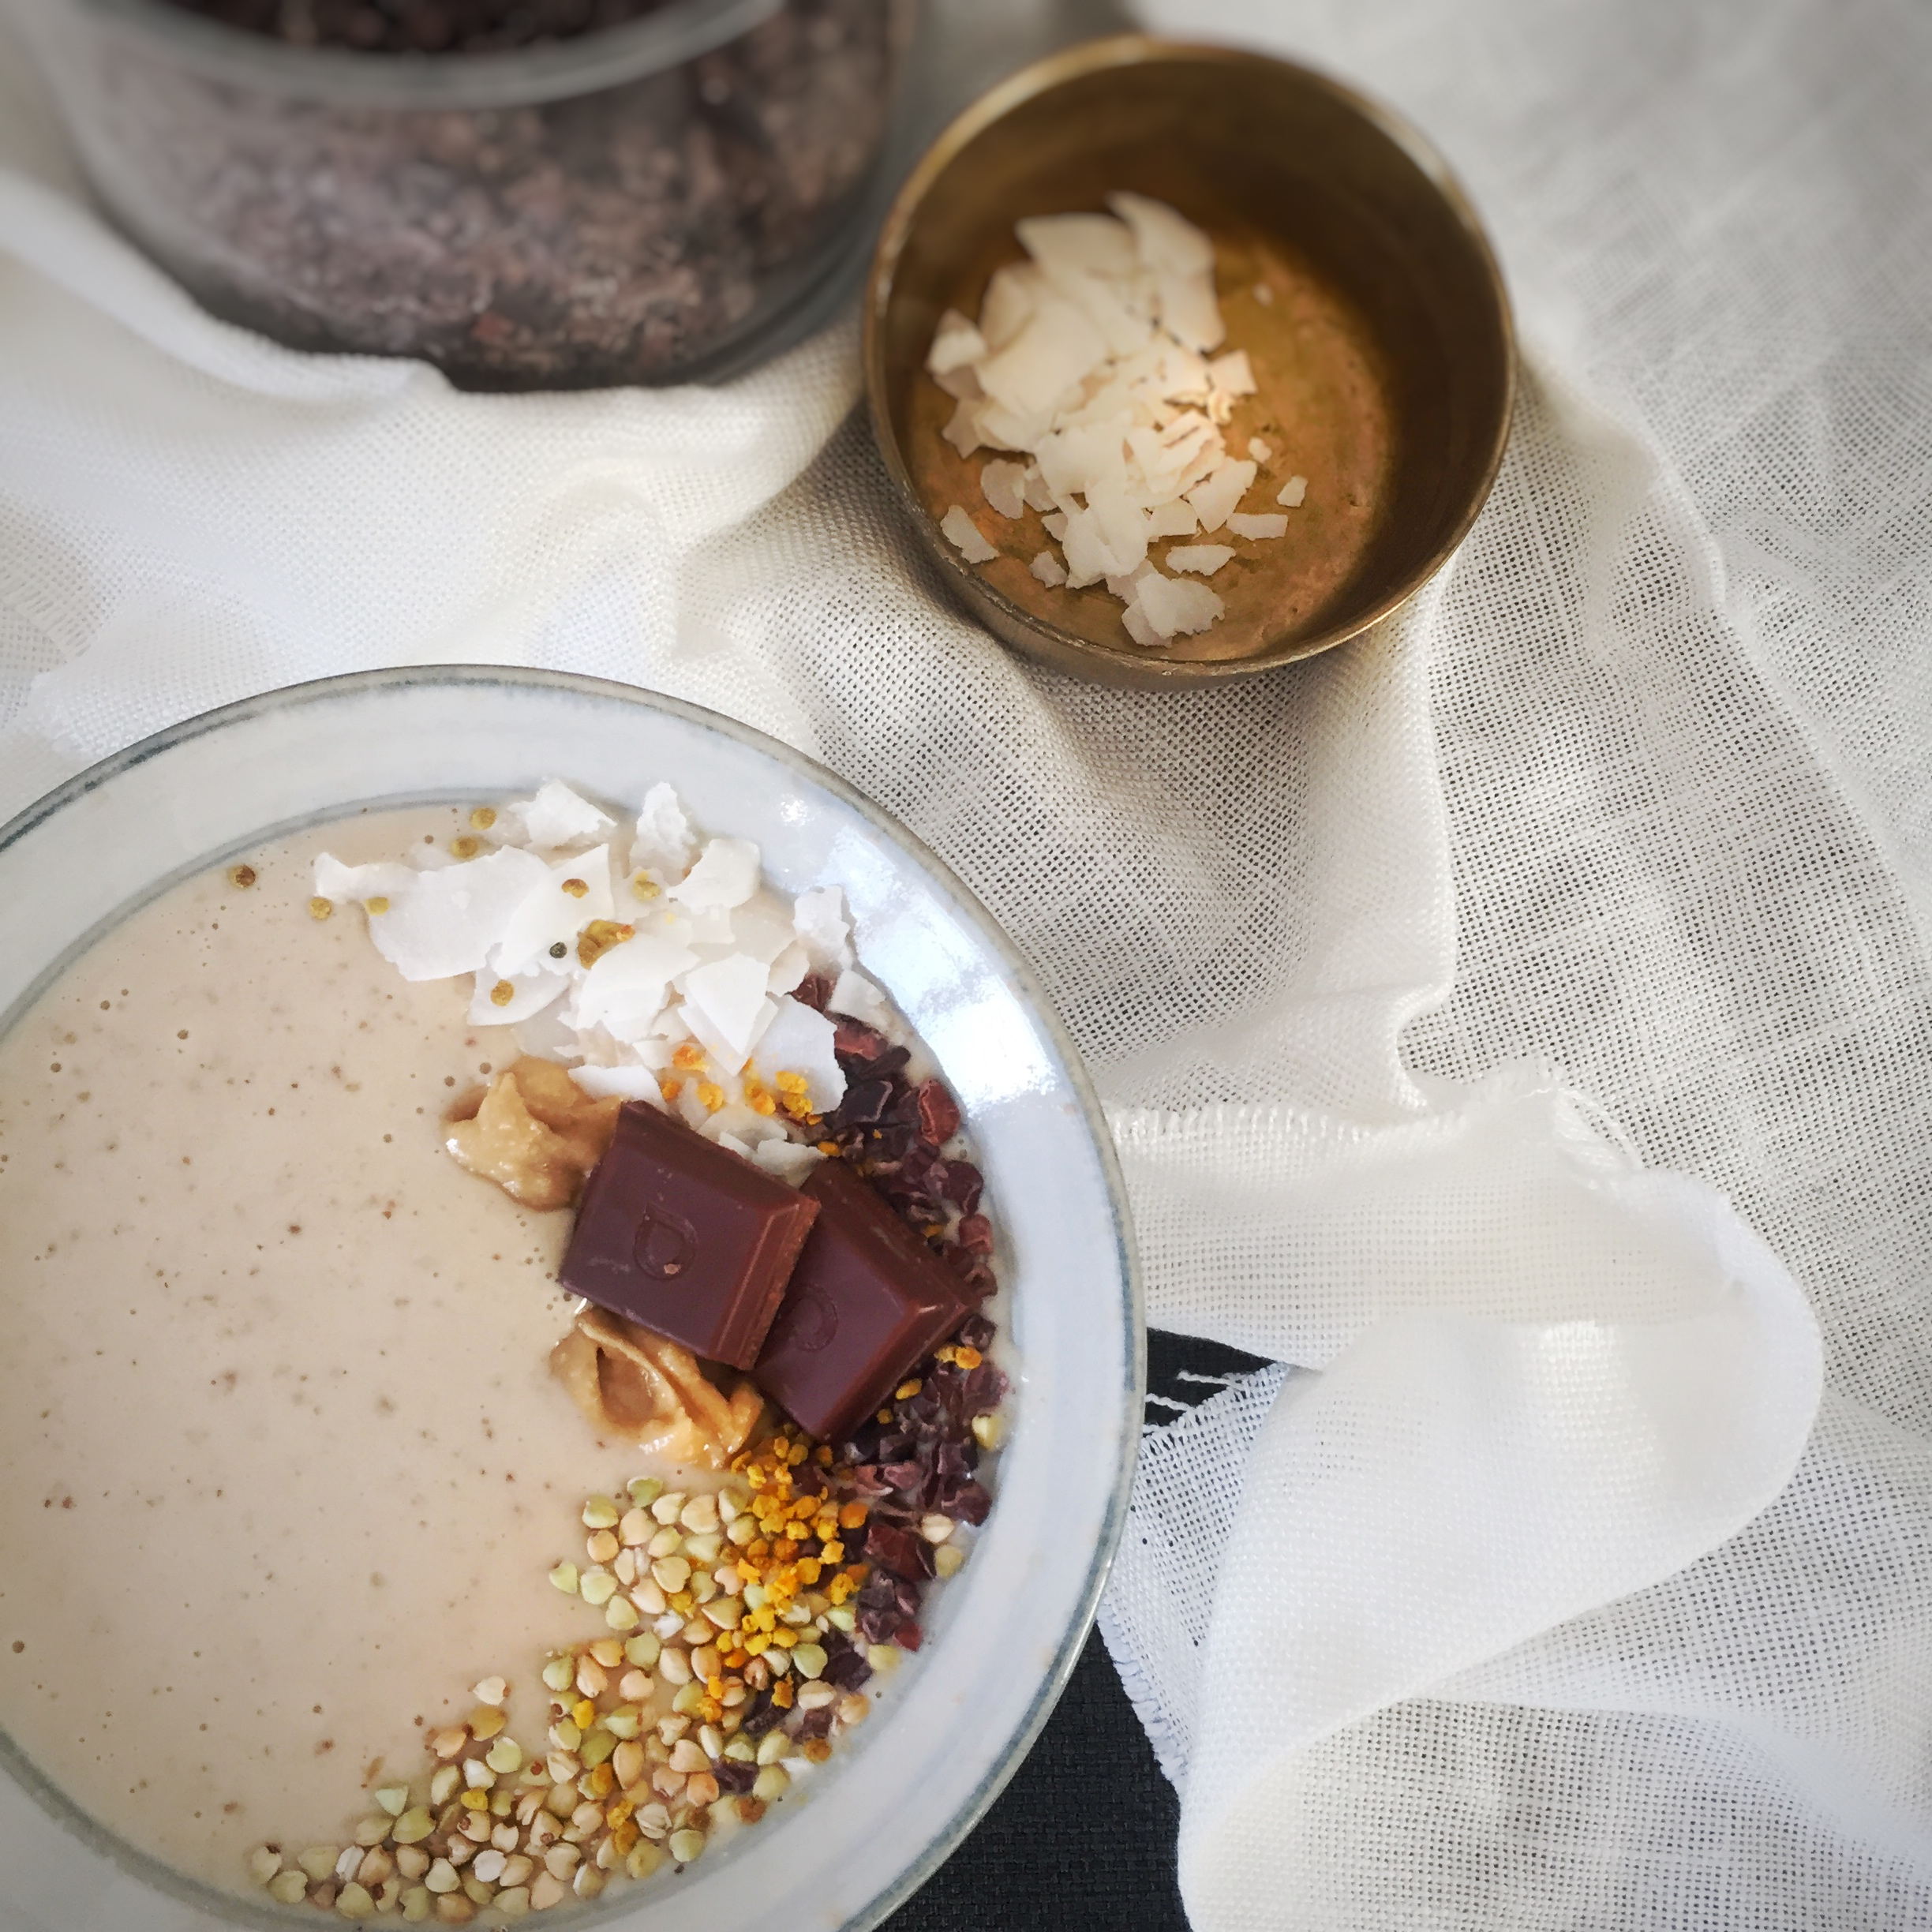 Salted Caramel and Choc Smoothie bowl